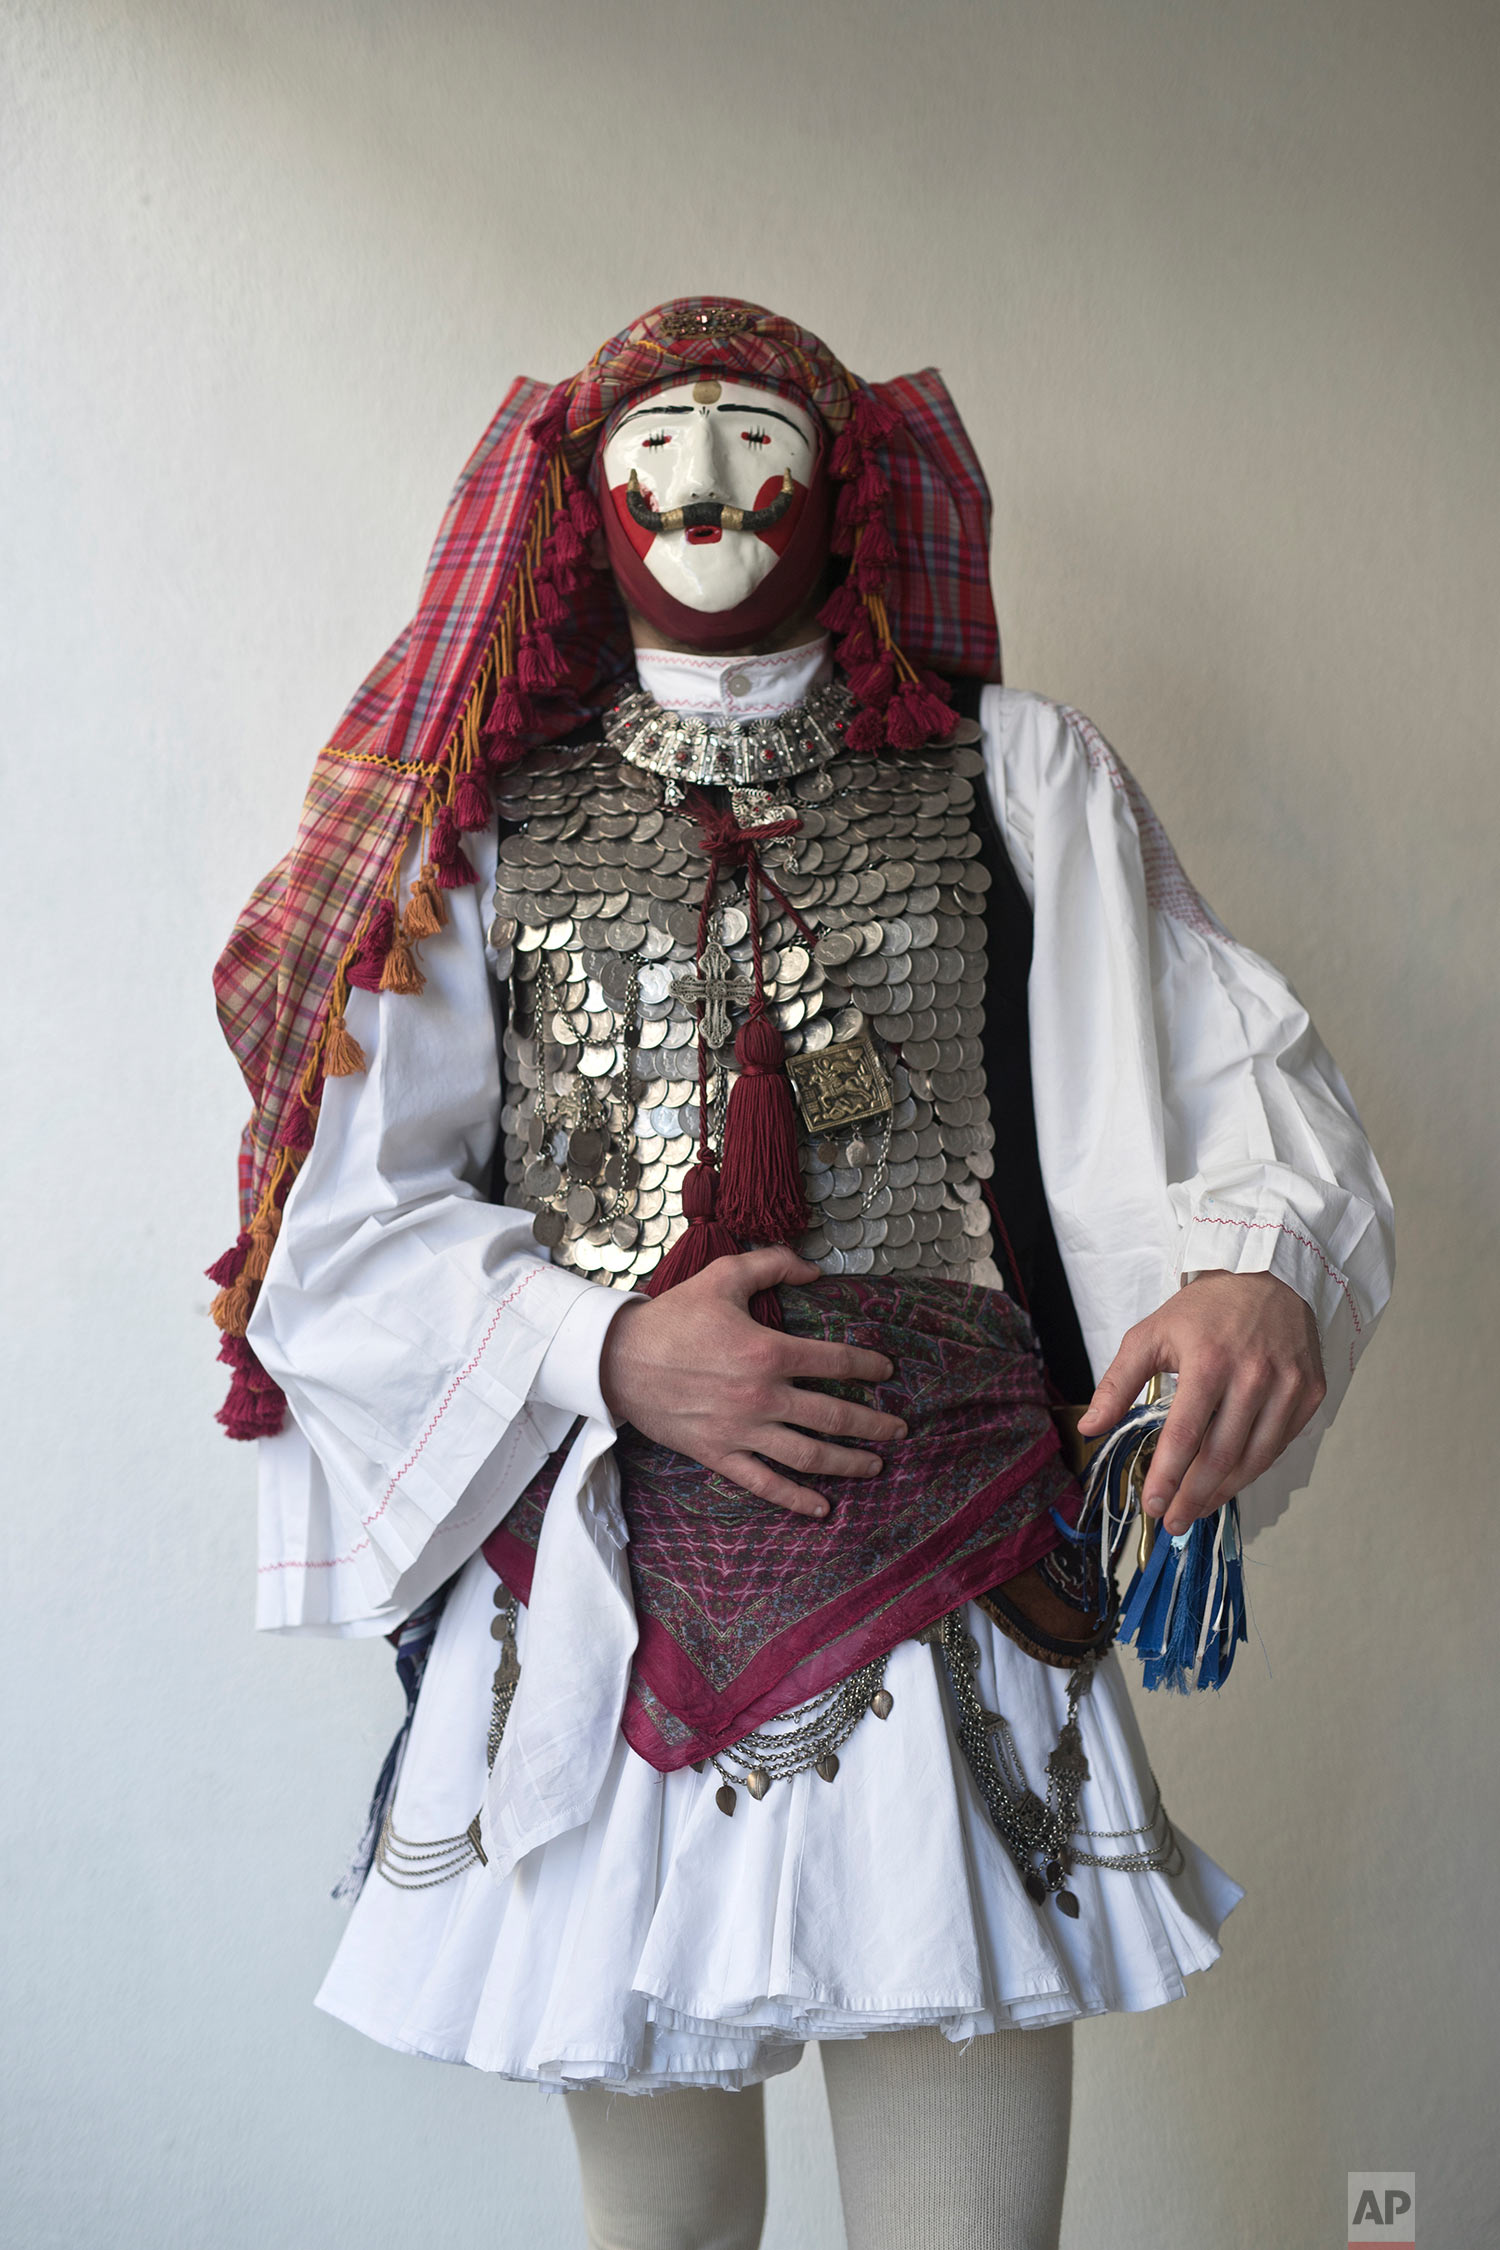 In this Sunday March 10, 2019 photo a dancer wearing a mask and traditional attire poses for a picture as he participates in the Boules and Genitsaroi carnival parade in the town of Naousa, northern Greece. (AP Photo/Petros Giannakouris)